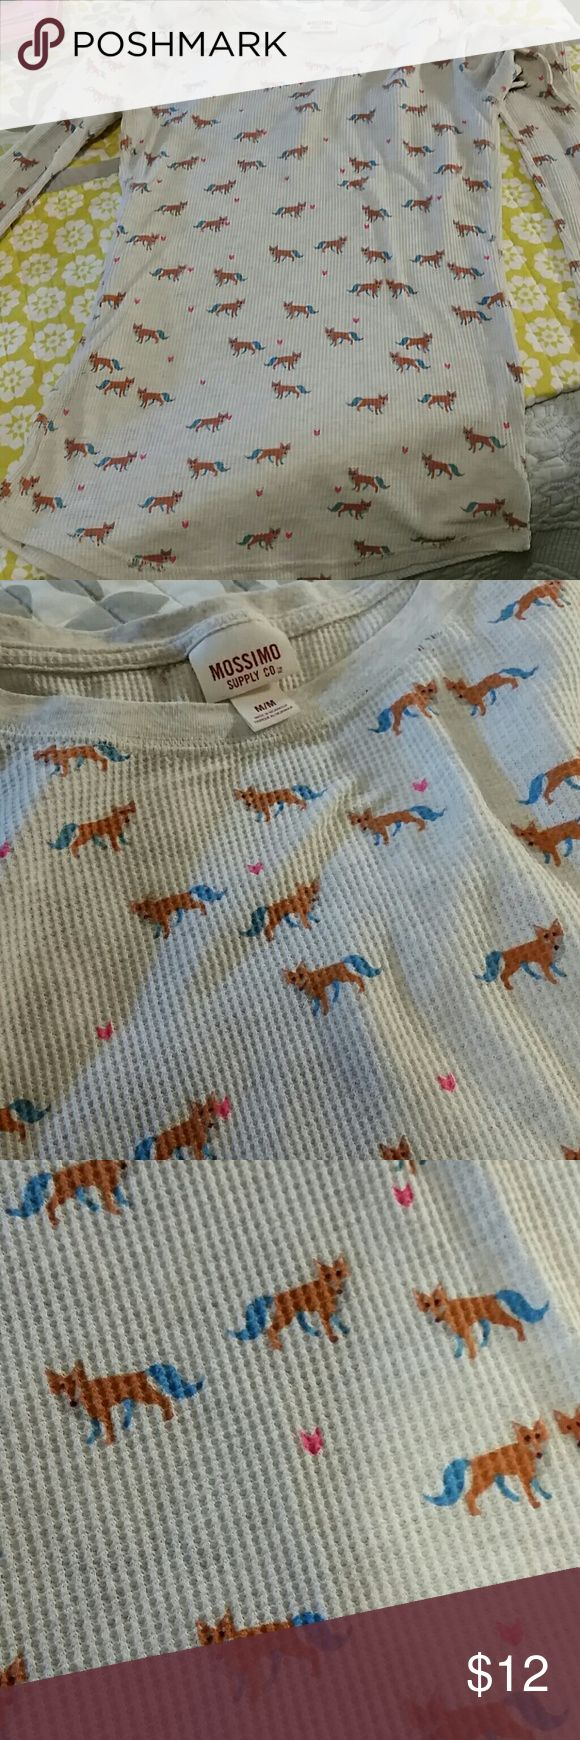 Mossimo fox print thermal top Bought from another posher on here but it doesn't fit me. Super cute, soft thermal long sleeve with adorable fox print and little pink hearts. No stains, holes, or tears. Great condition! Open to offers, measurements in pics Mossimo Supply Co. Tops Tees - Long Sleeve